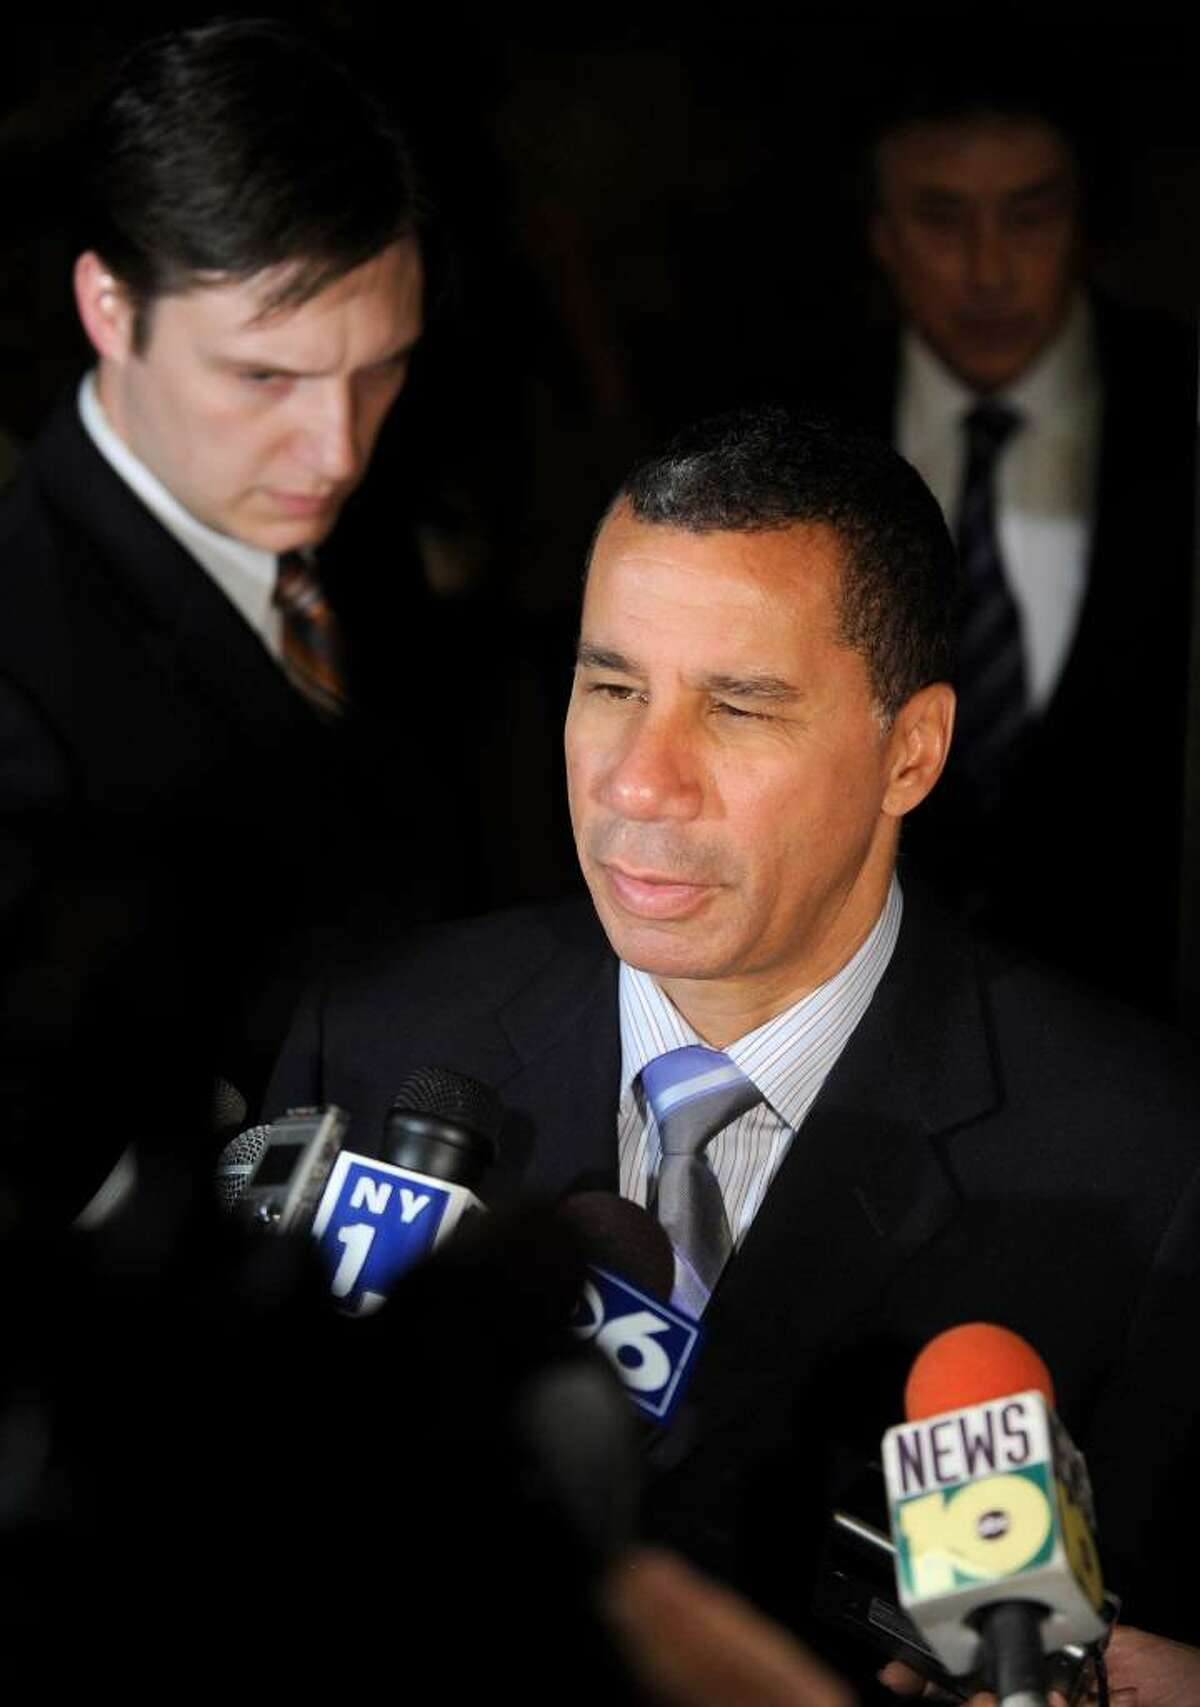 Gov. David Paterson says he has been busy with vetoes, but has signed two bills this week affecting the lives of ordinary New Yorkers. (AP Photo/Tim Roske)